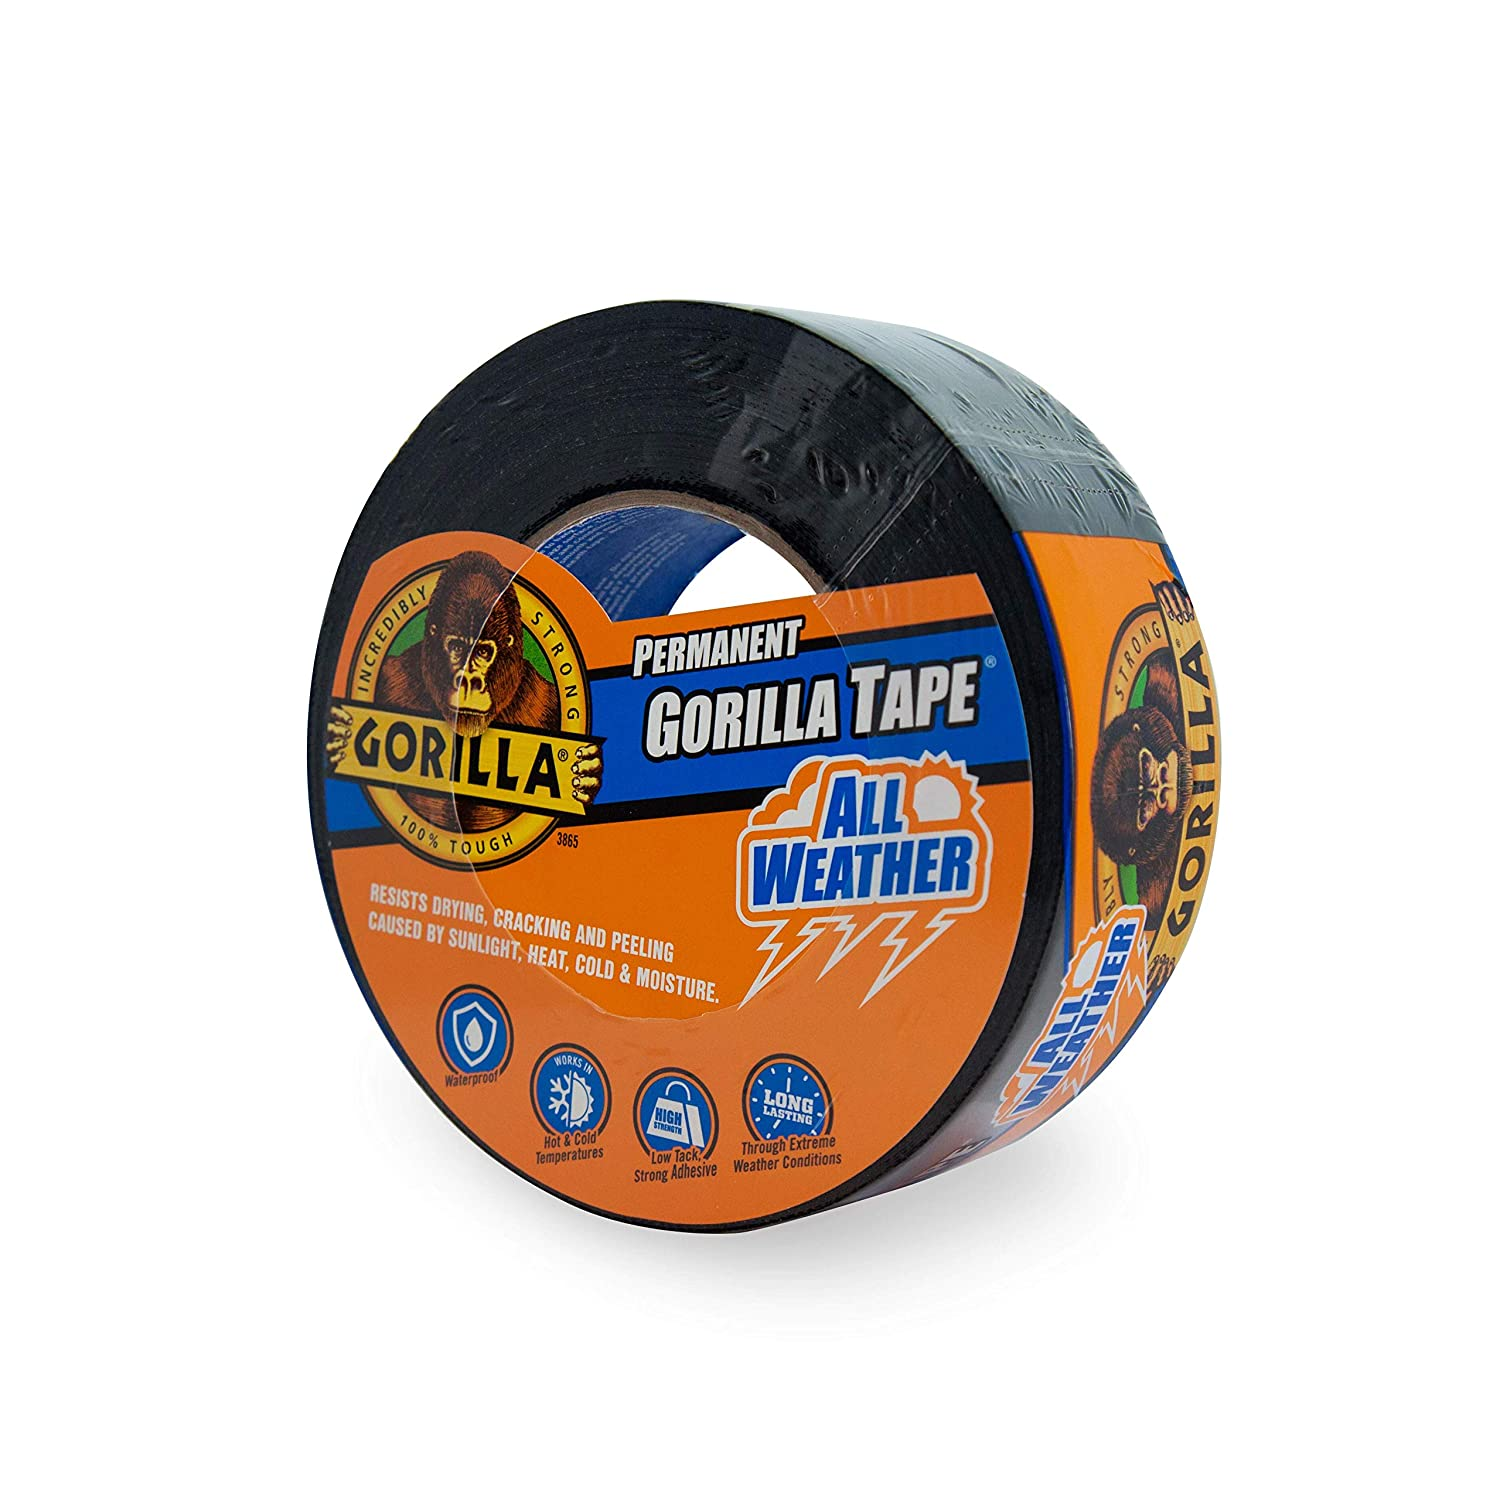 "Gorilla All Weather Outdoor Waterproof Duct Tape, UV and Temperature Resistant, 1.88"" x 25 yd, Black (Pack of 1)"